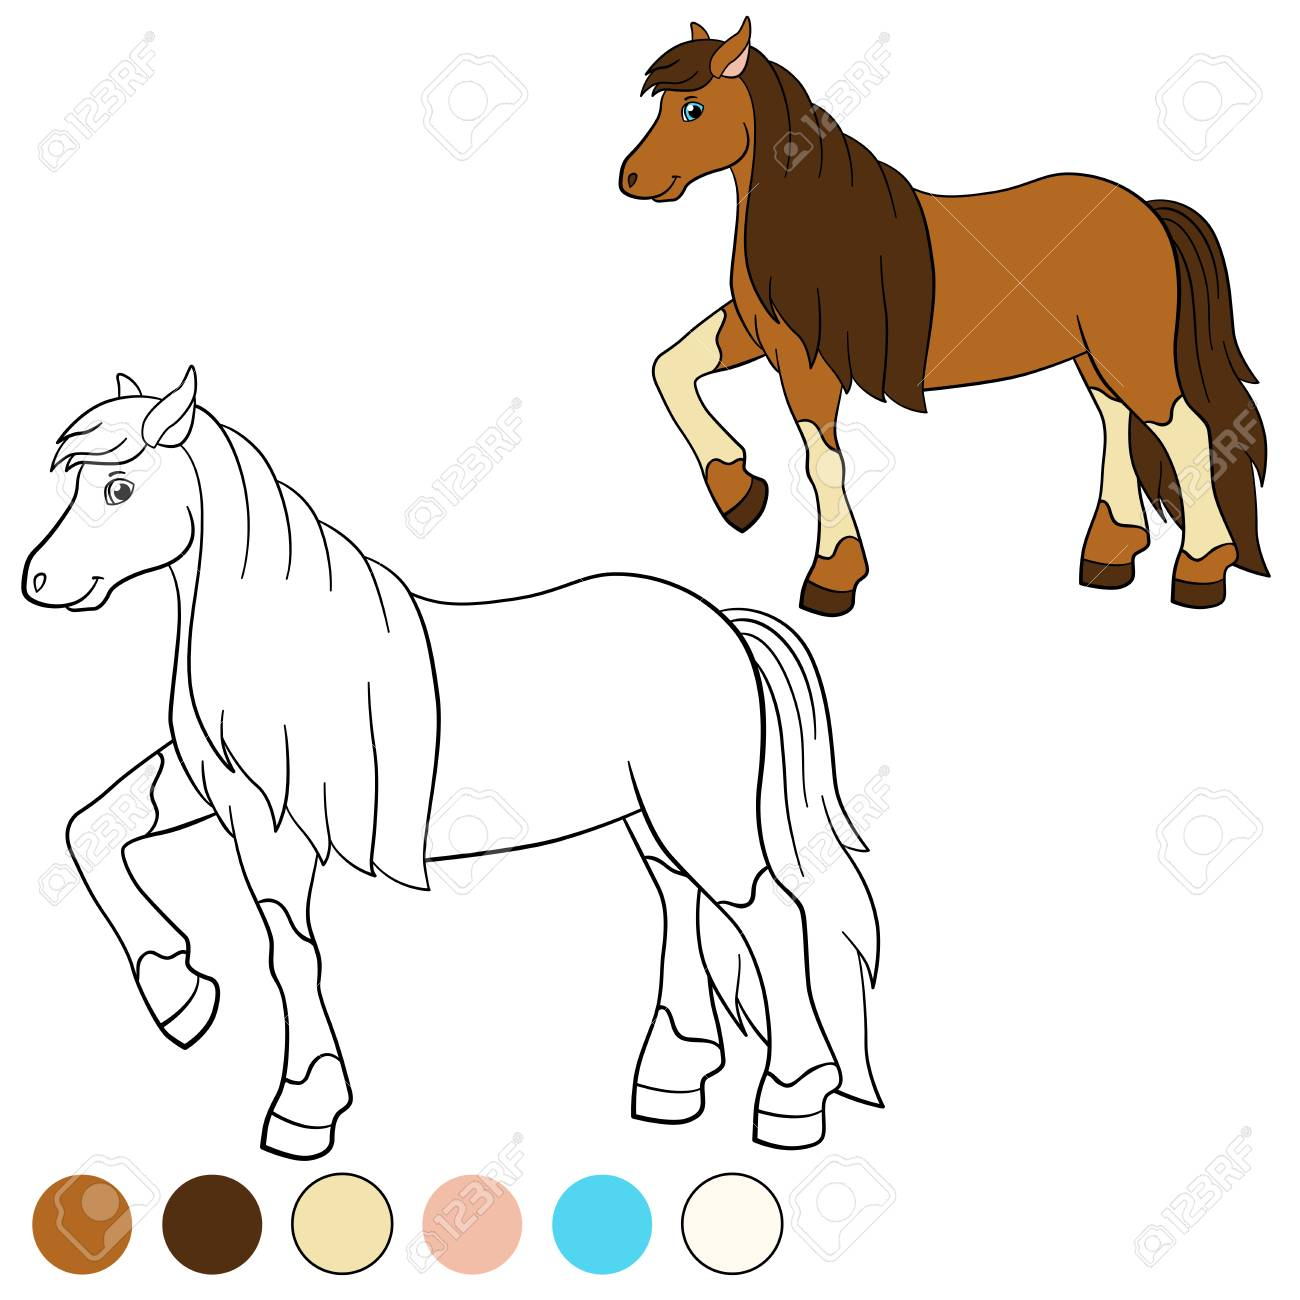 Coloring Page Color Me Horse Cute Walks And Smiles Stock Vector